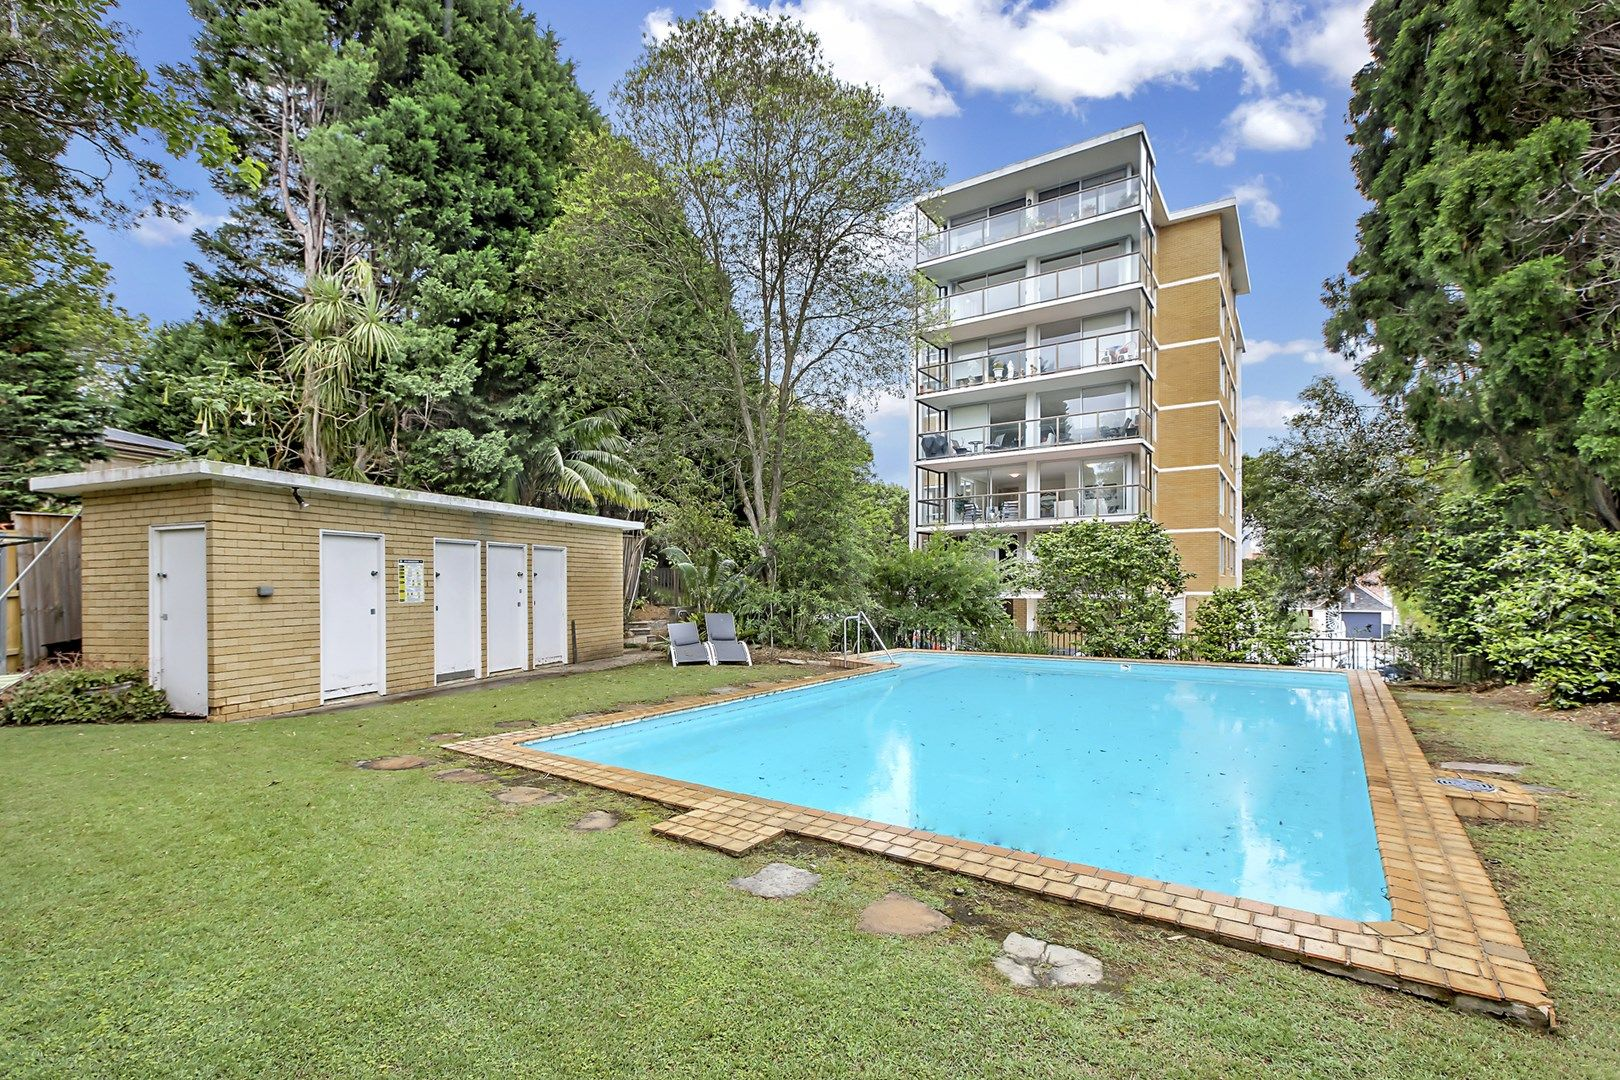 22/63 Darling Point Road, Darling Point NSW 2027, Image 0